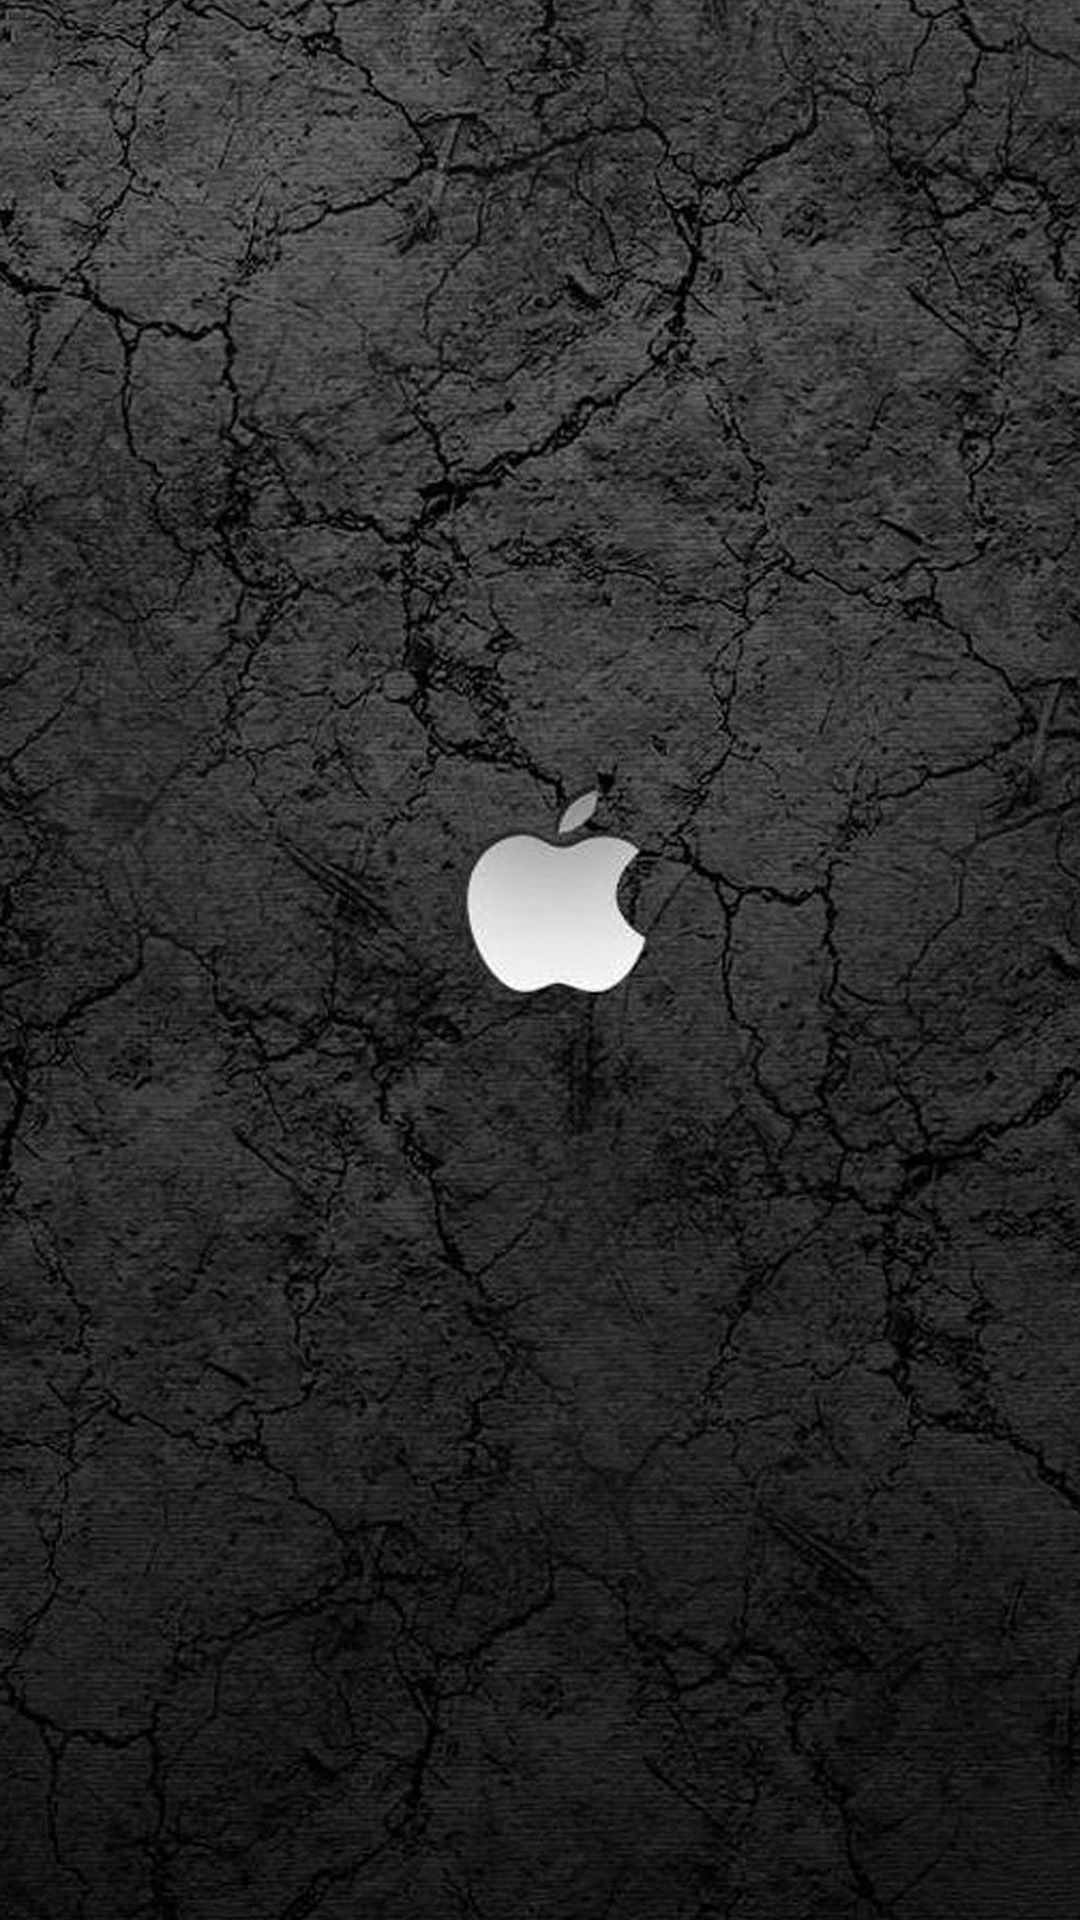 Apple Logo On A Cracked Cement Background